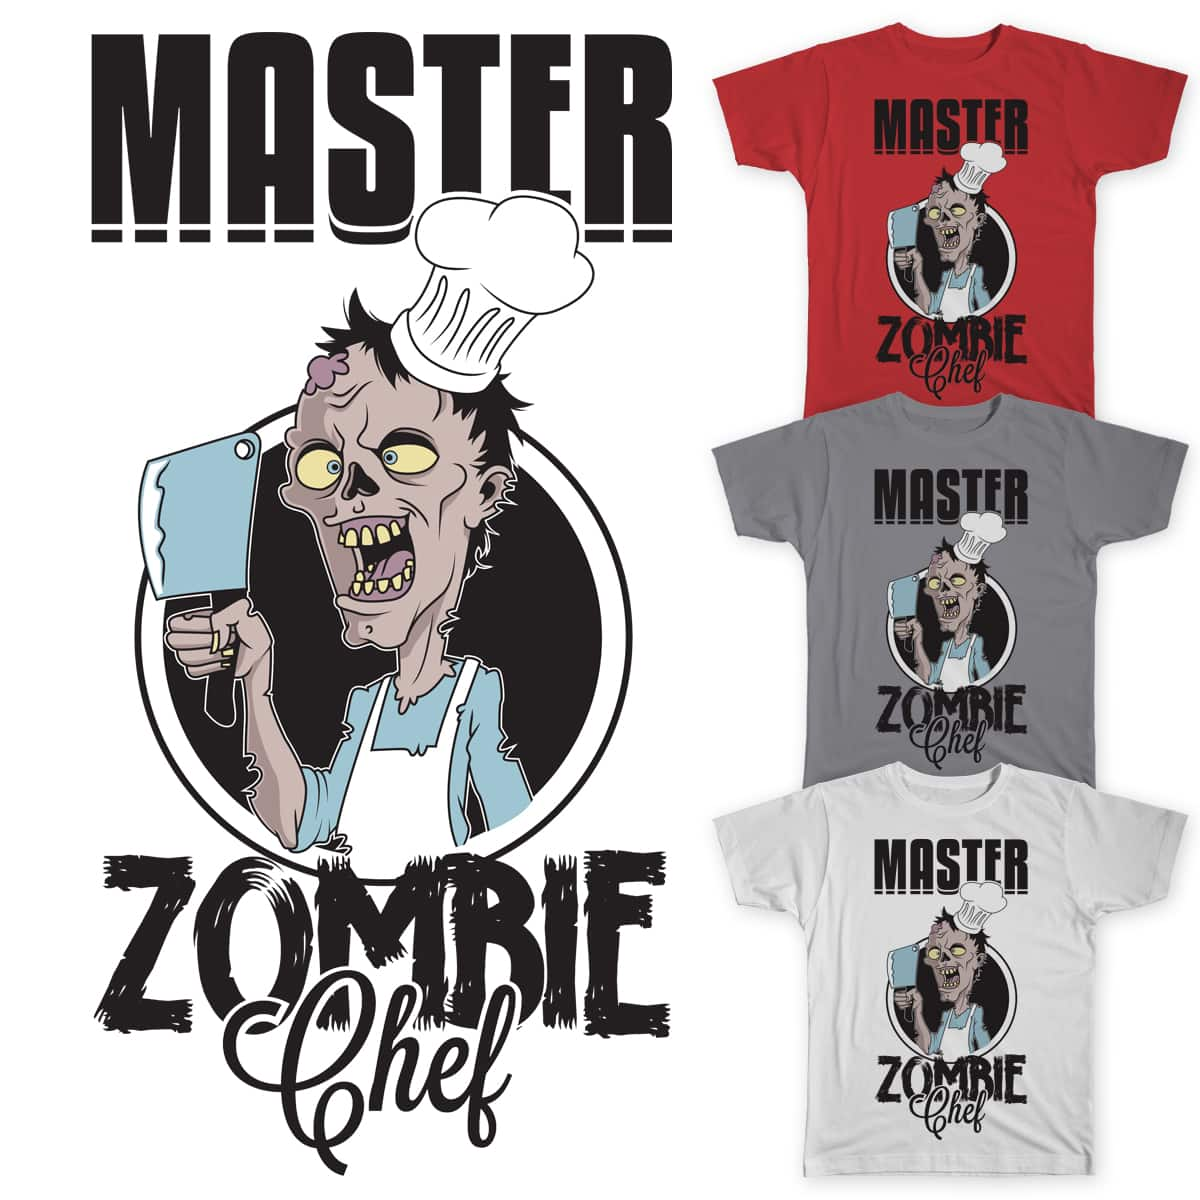 Master Zombie Chef by Quinto_C on Threadless